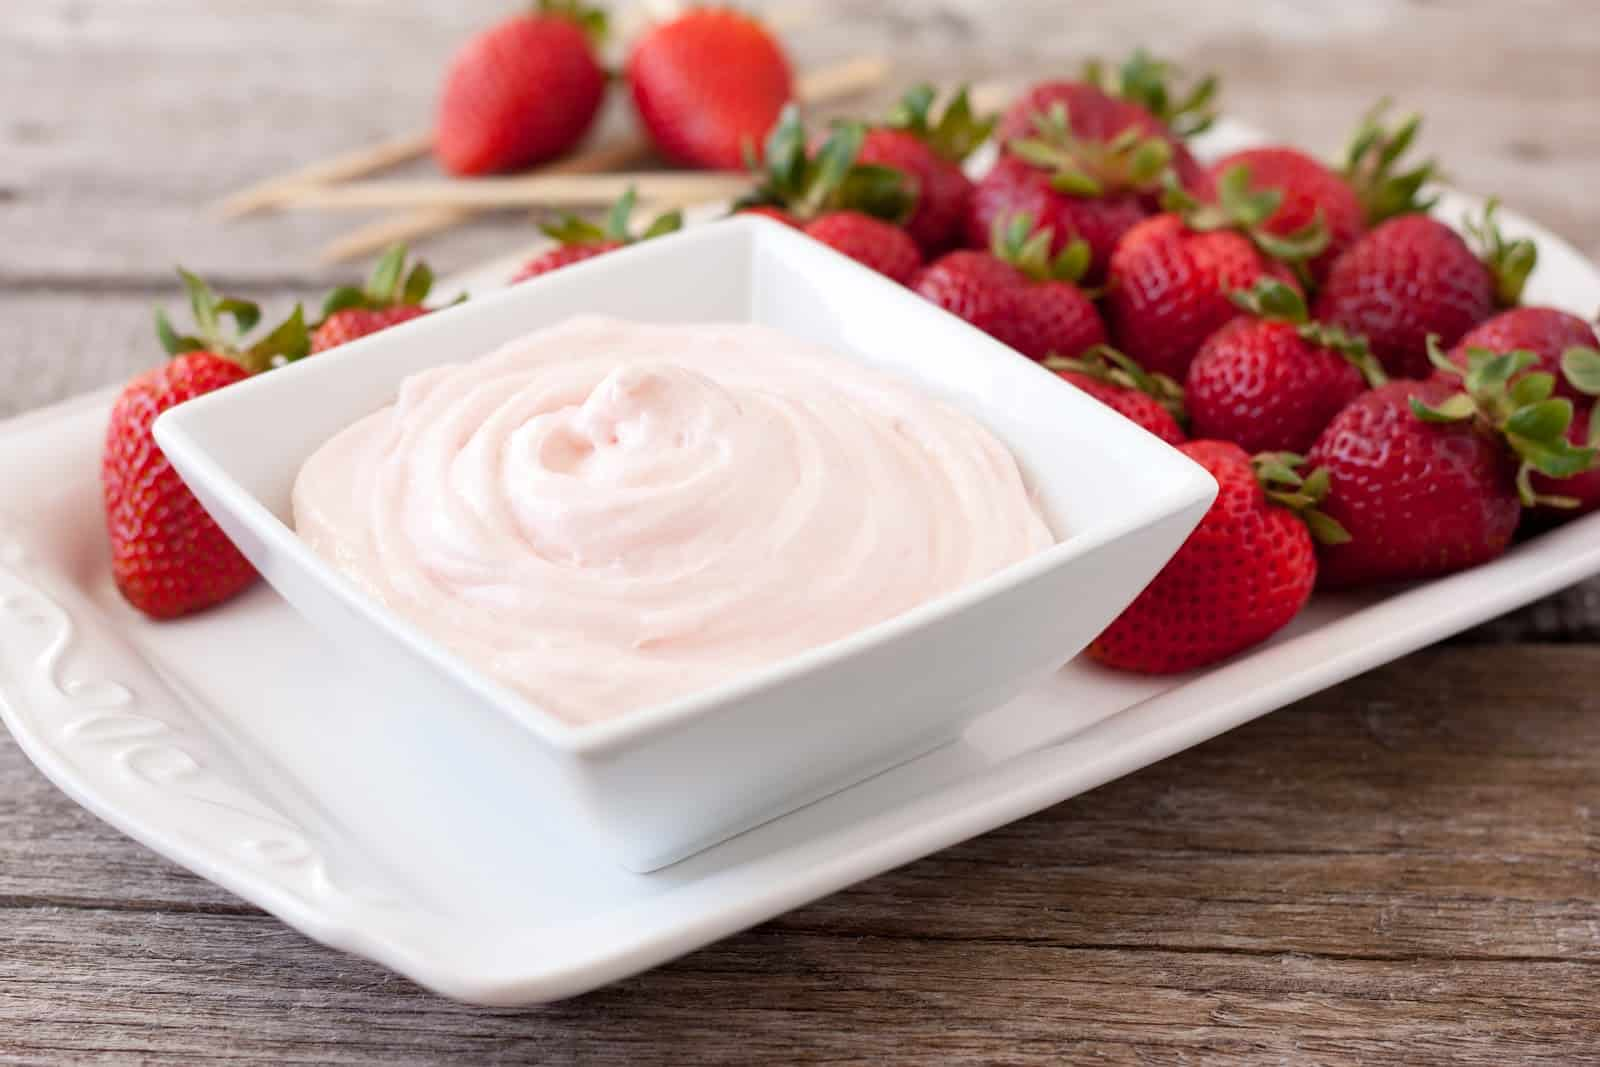 Two ingredient fruit dip recipe